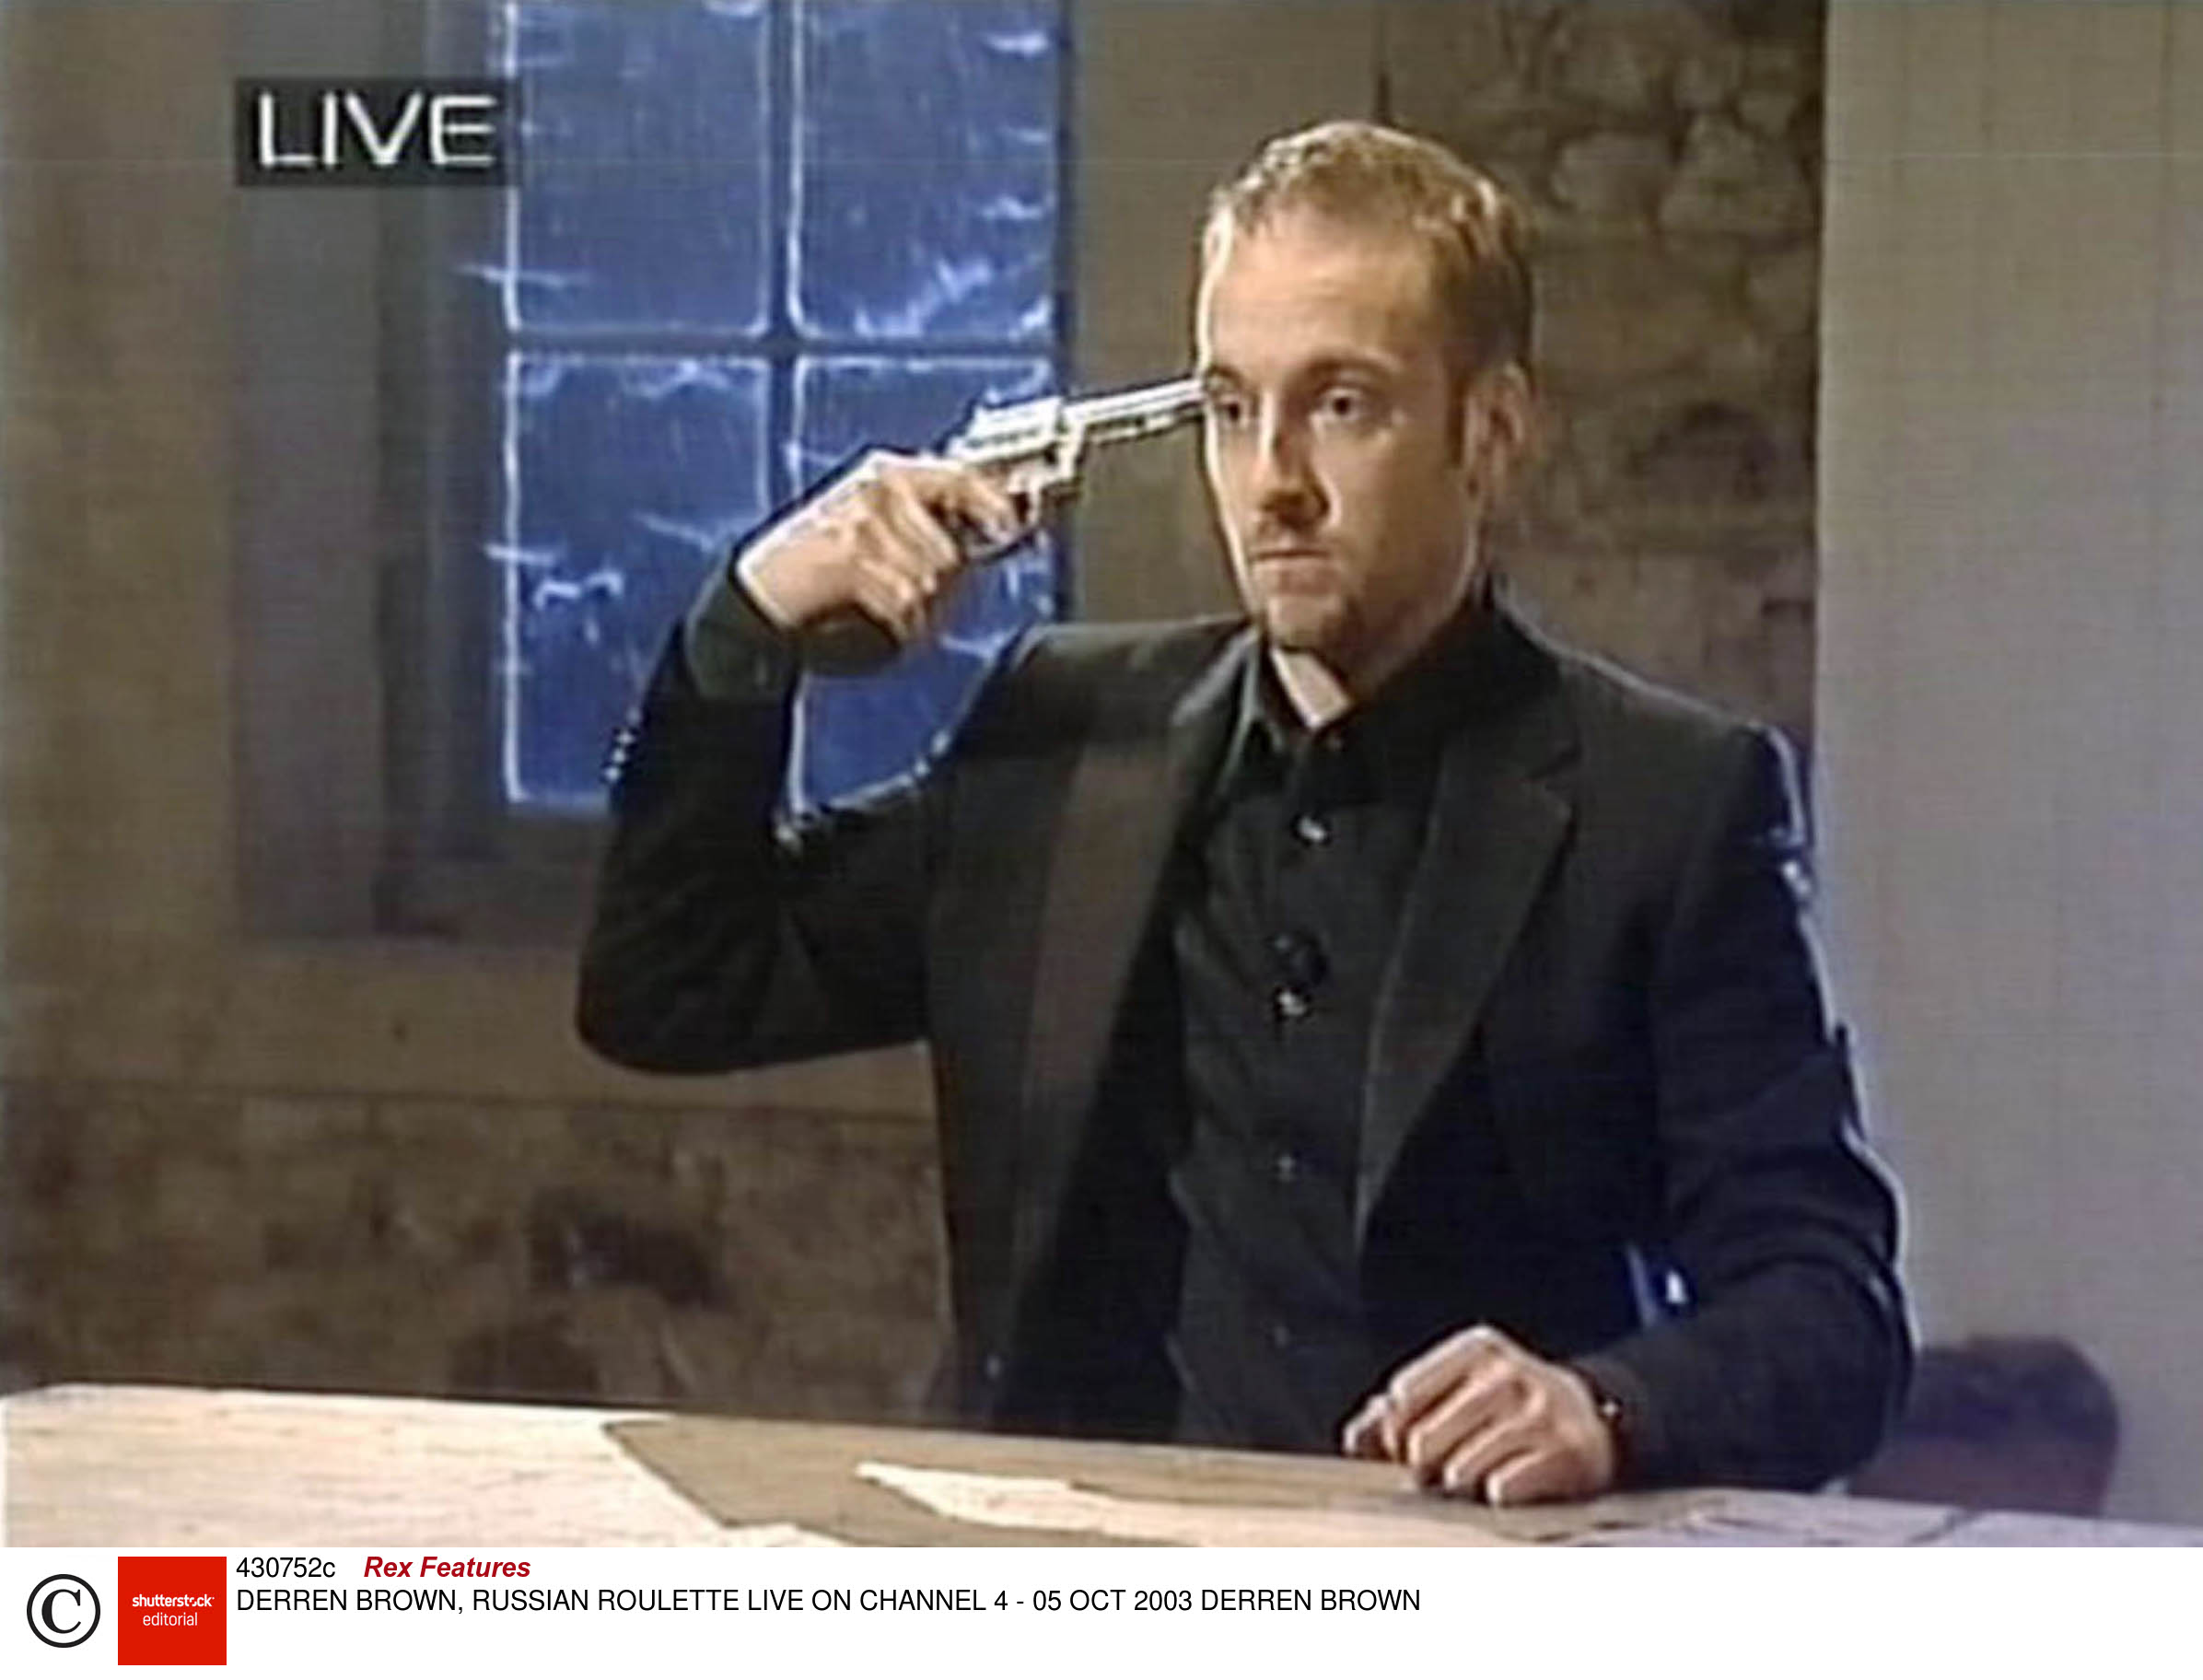 Brown performs a Russian Roulette stunt on live television in 2003